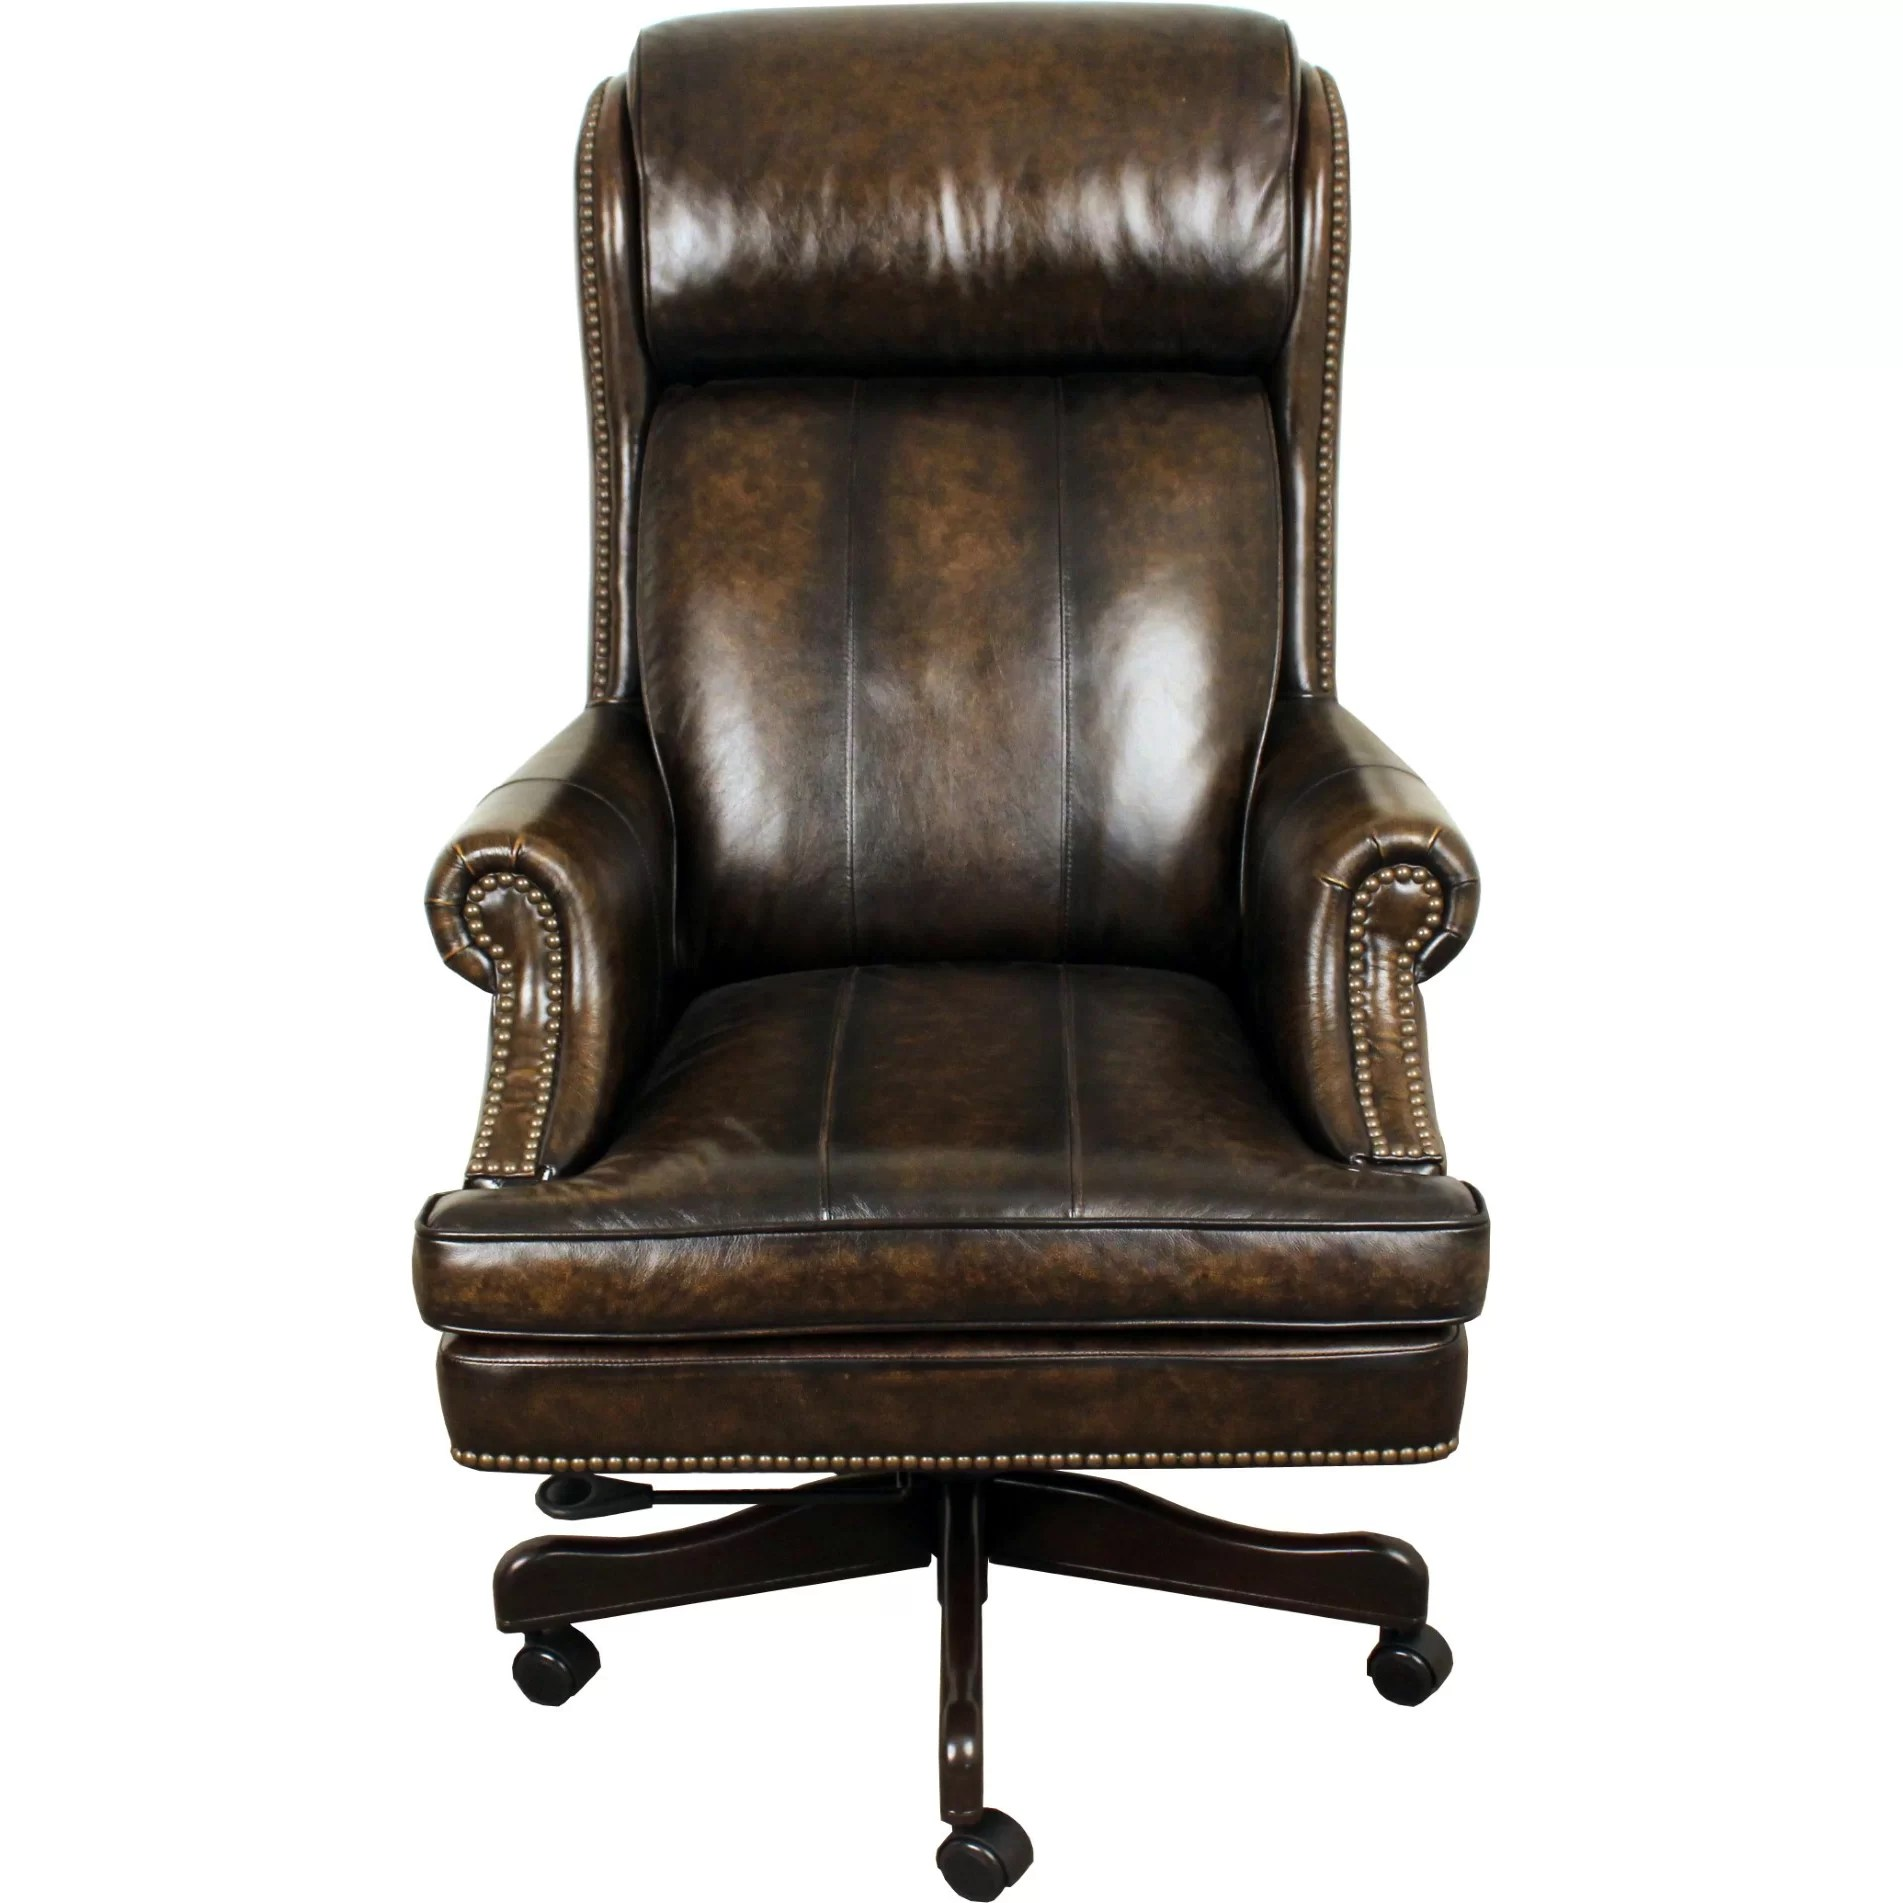 Lynton HighBack Leather Executive Office Chair  Wayfair